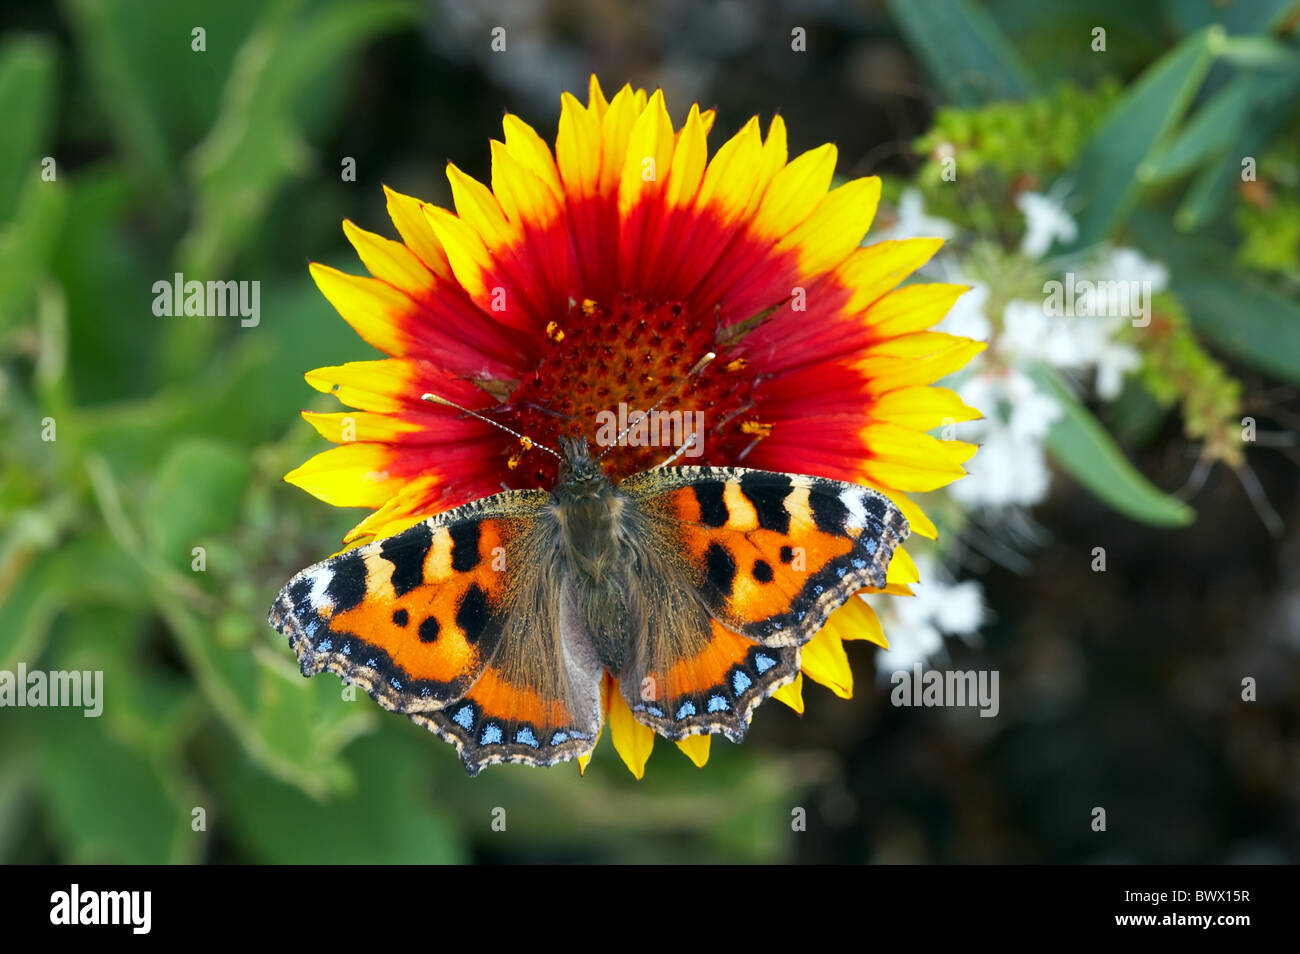 animal animals butterfly butterflies insect insects invertebrate invertebrates arthropod arthropods tortoiseshells - Stock Image